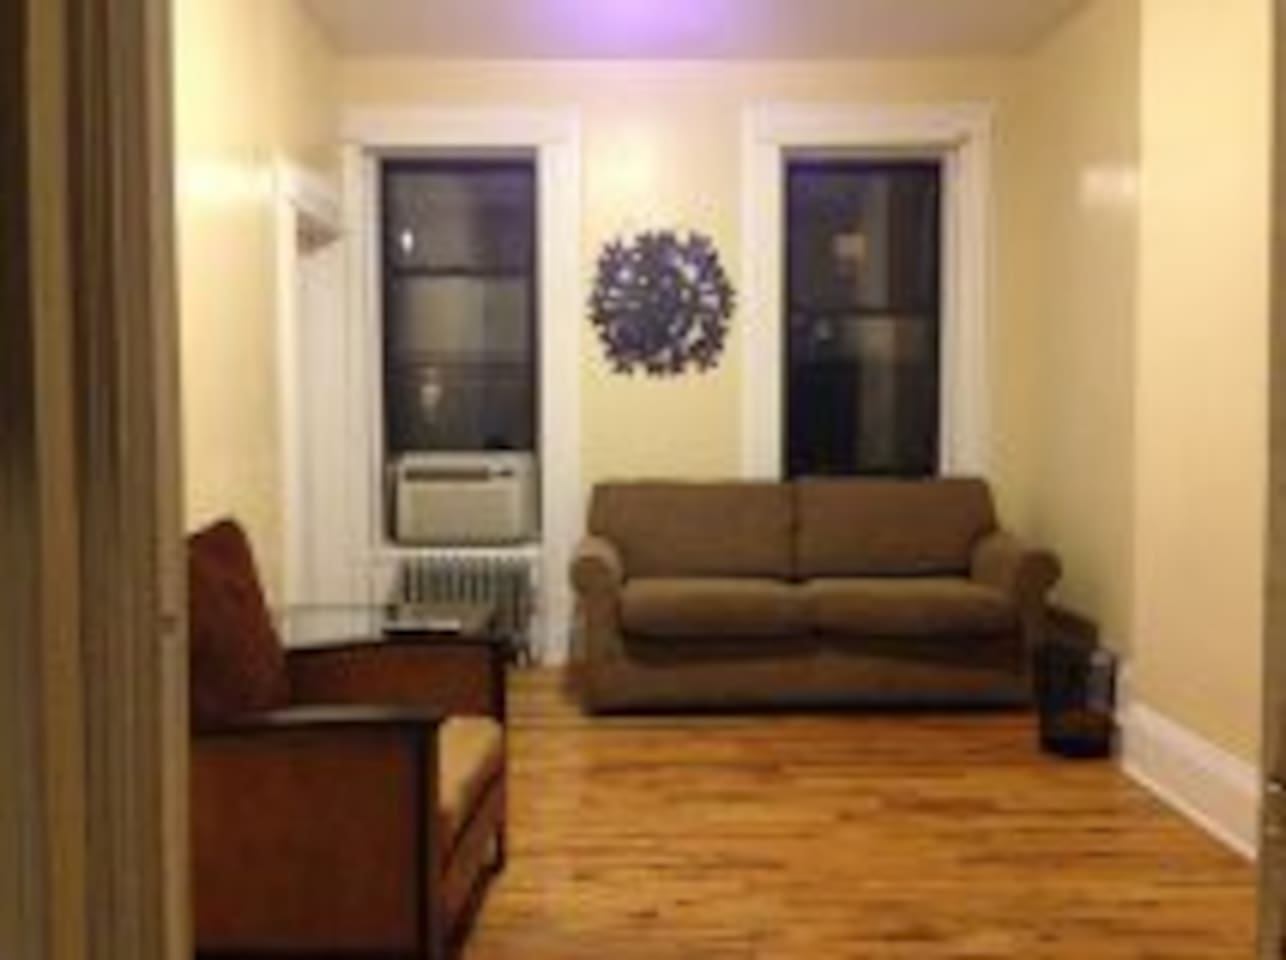 park slope brooklyn ny real estate for sale